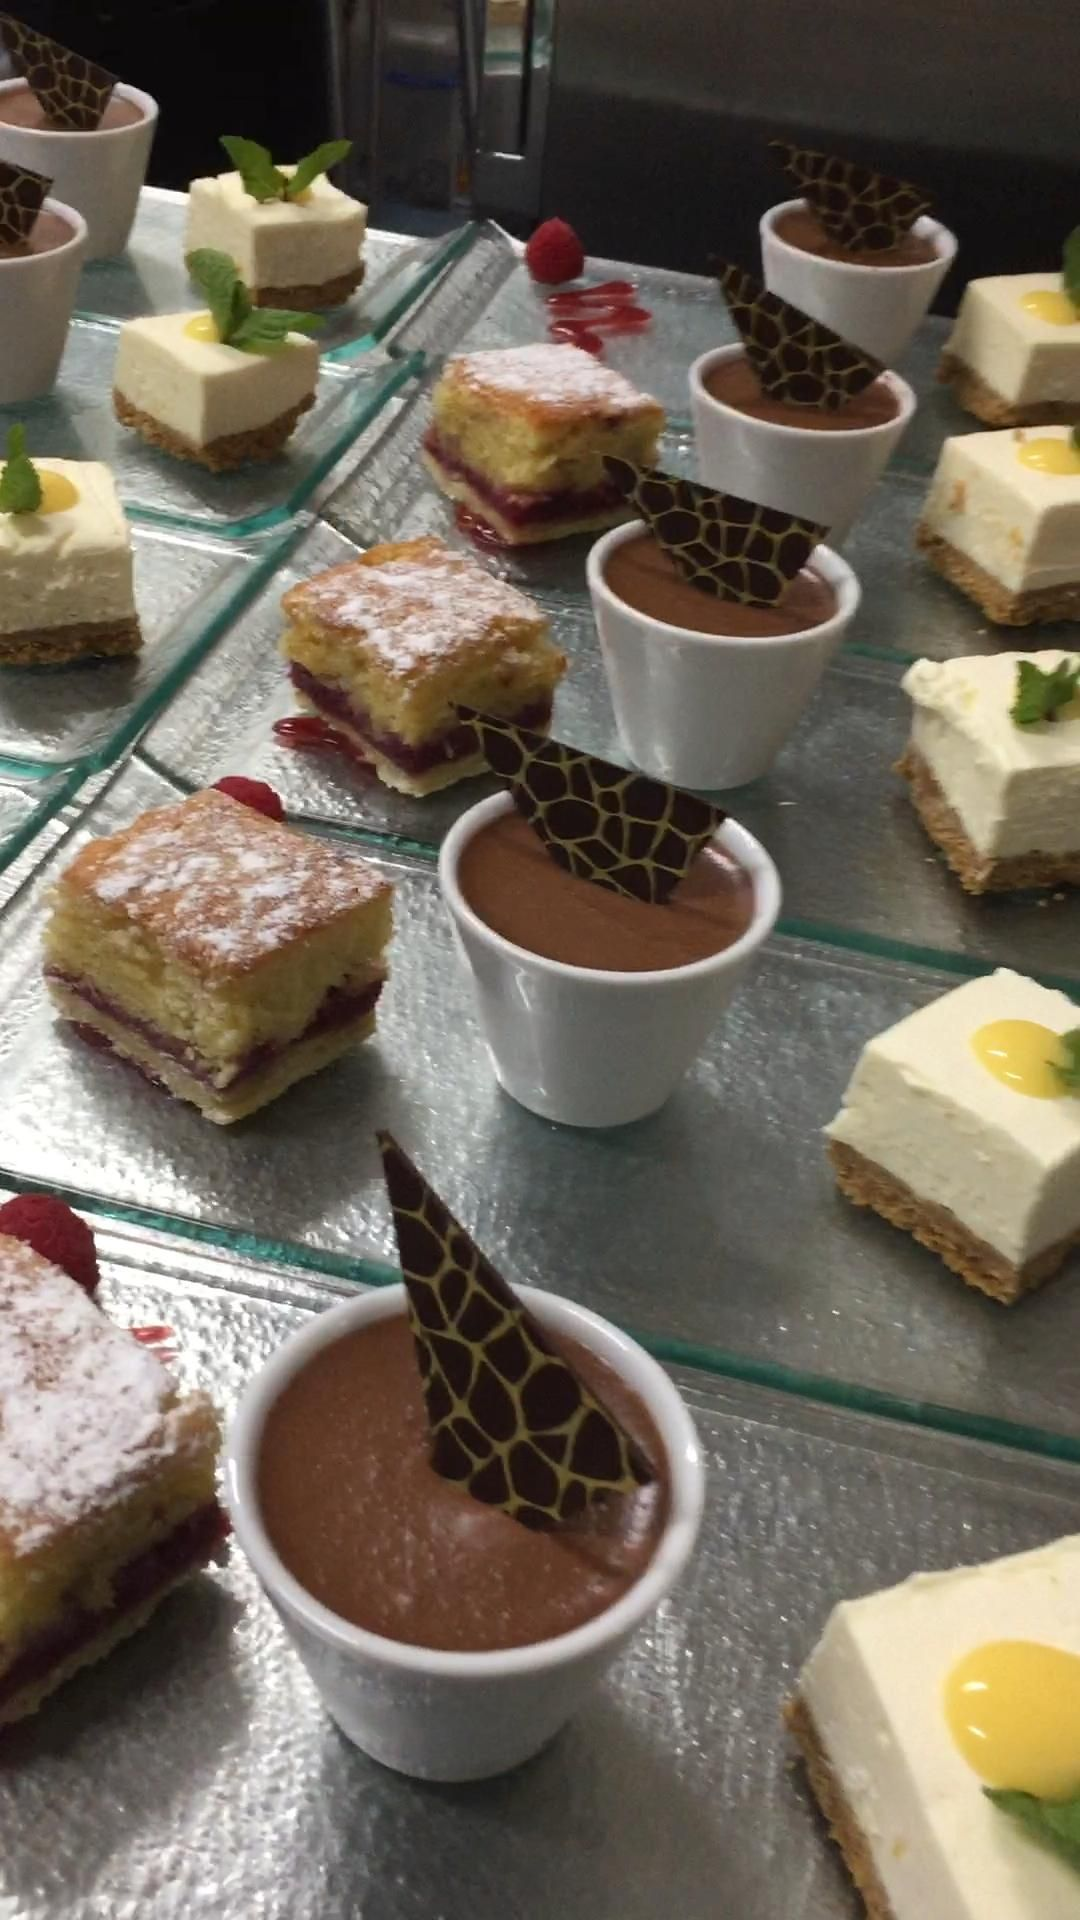 Trio of desserts for corporate dinner - Bakewell tart, chocolate mocha mousse and lemon cheesecake #desserttrio #trioofdesserts #dessertvideo #video #caterers #corporateevents #localproduce